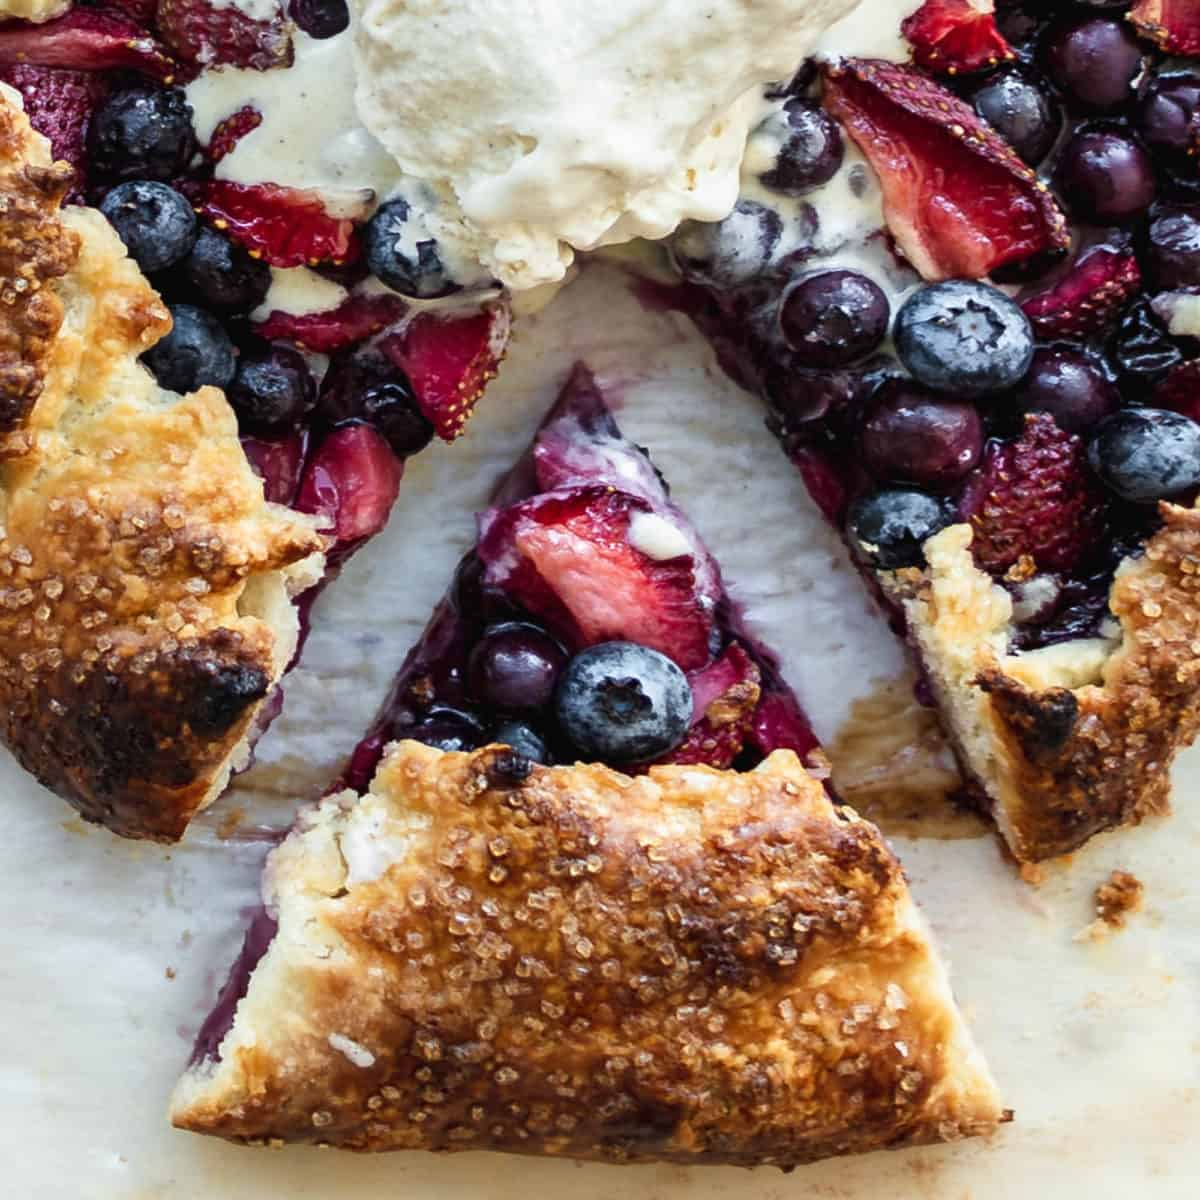 A slice of blueberry and strawberry pie up close.